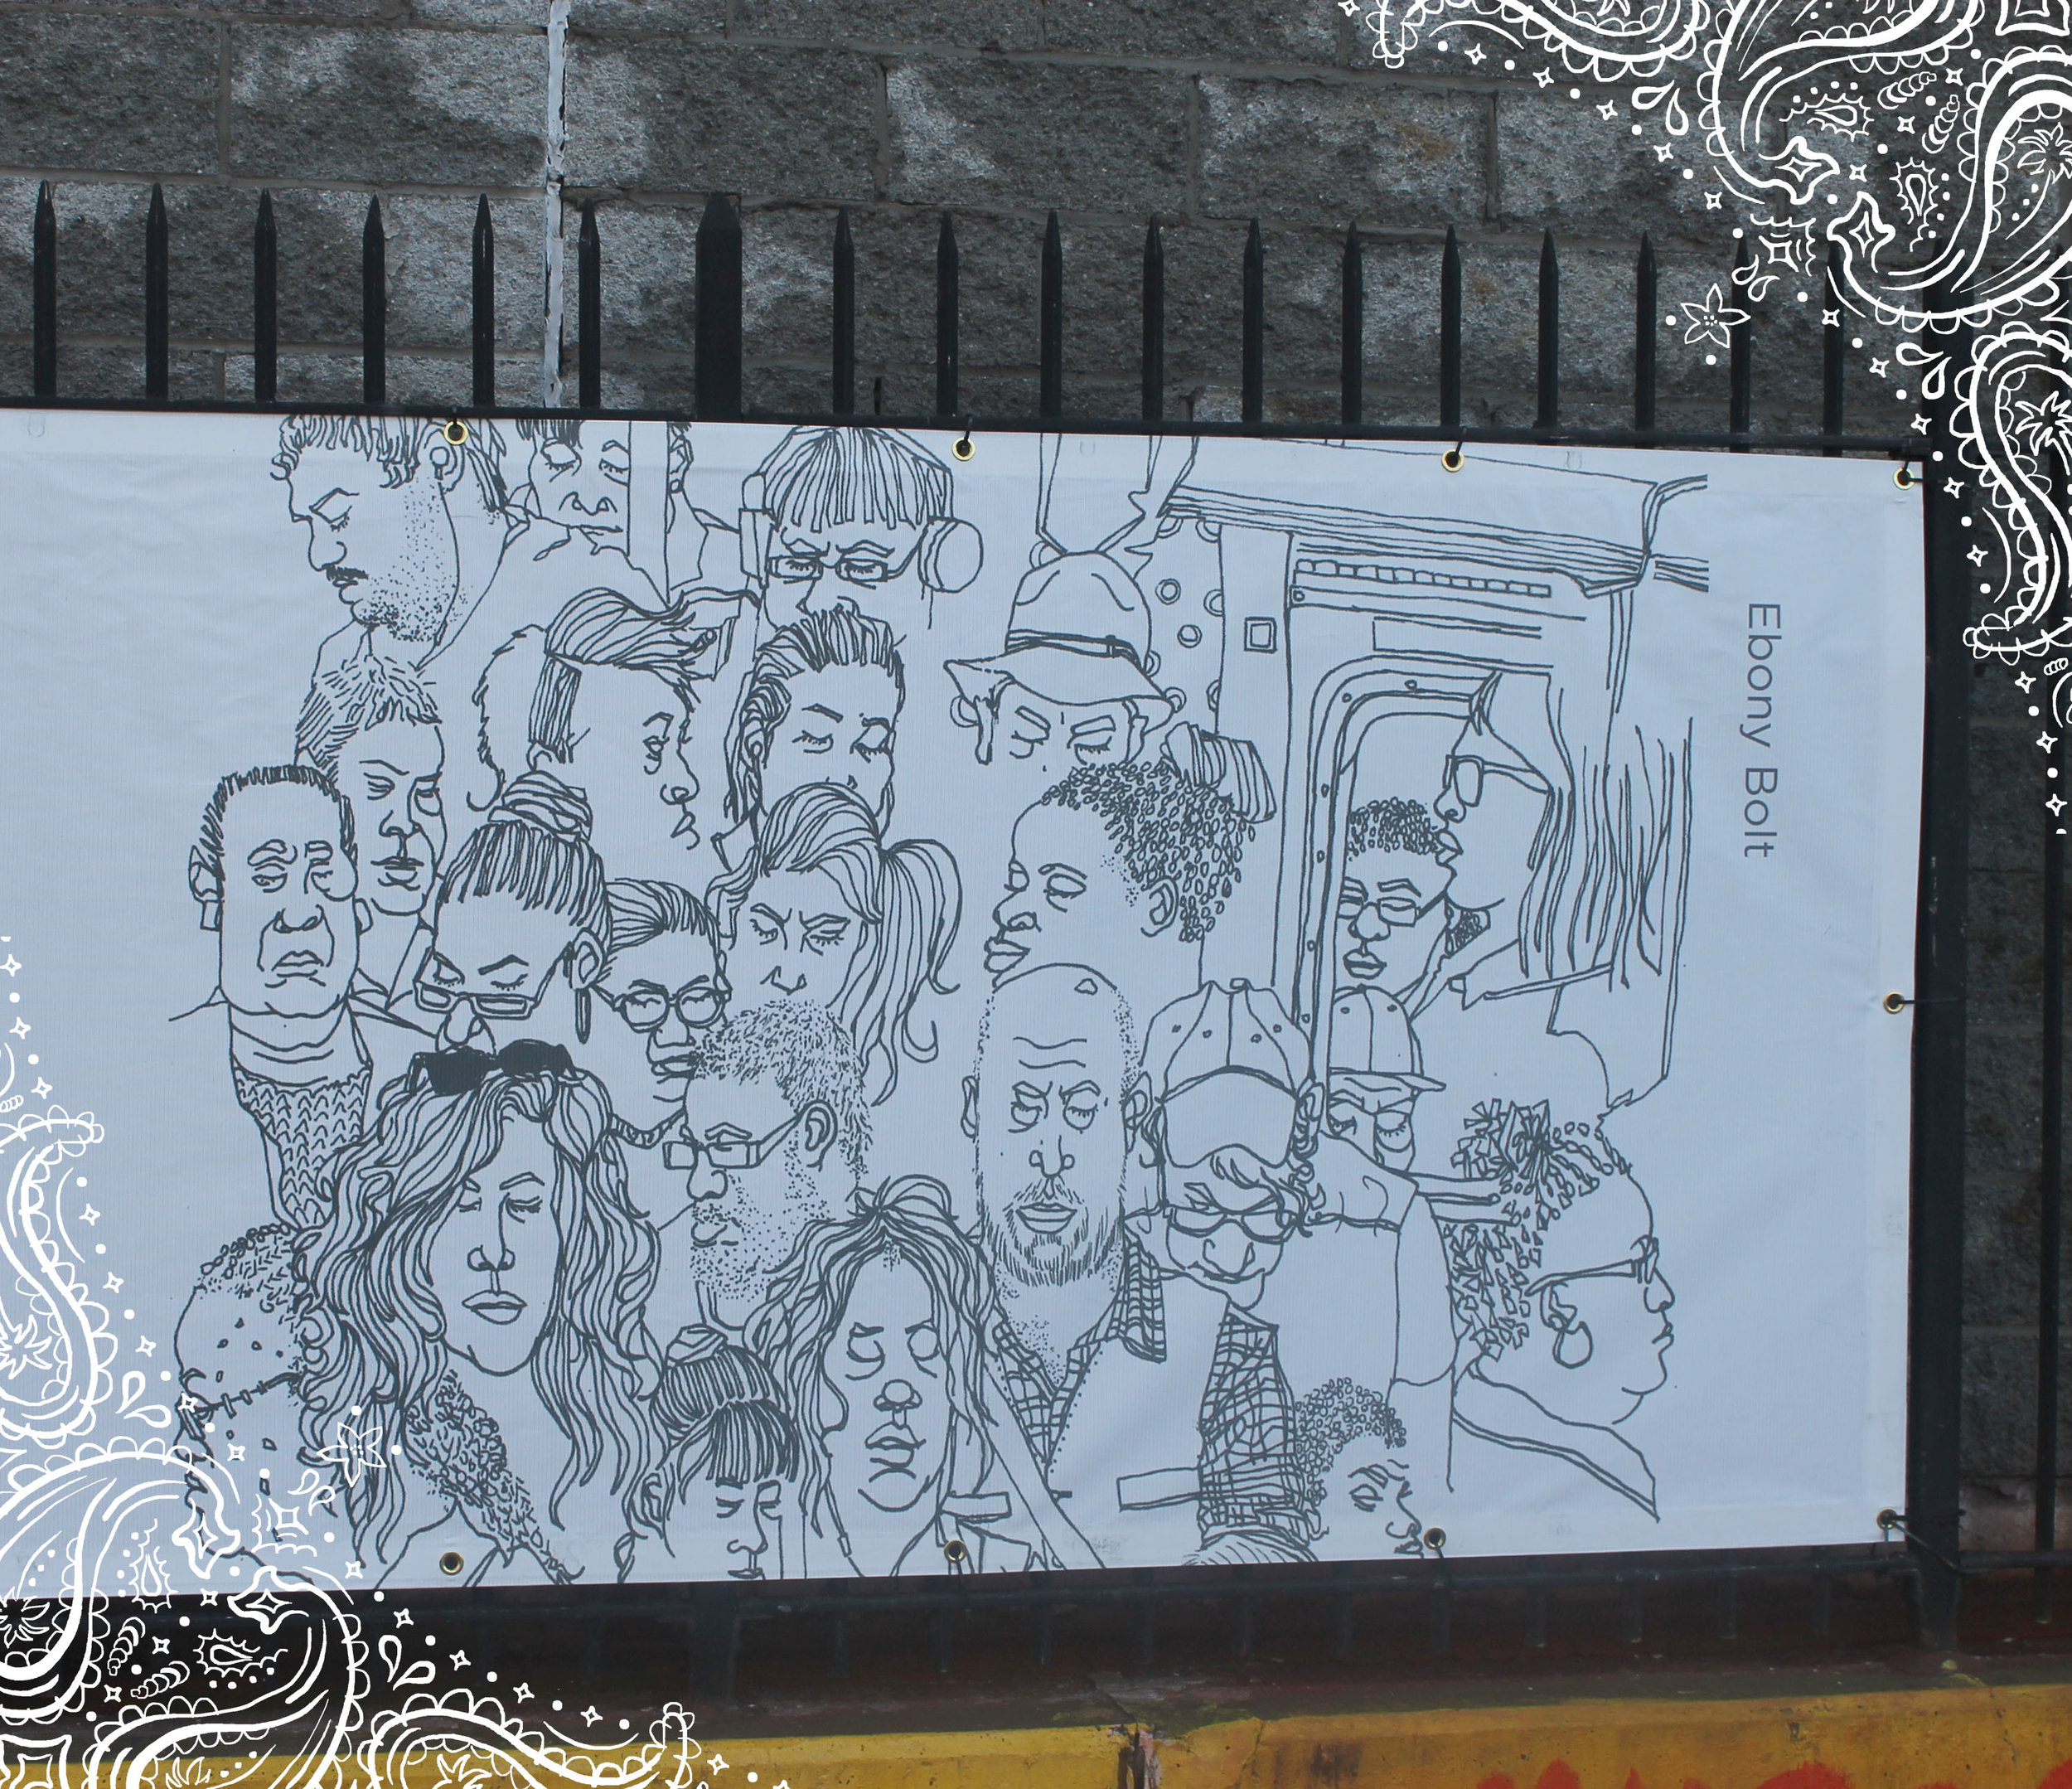 Artbridge: Brownsville Matters (2017-2018)   Brownsville Matters was created by the organization Artbridge. The idea of the exhibition was to create pieces that reflected the community in which the works would be displayed. You can find 6 of my pieces on display at 30 Belmont Avenue in Brownsville Brooklyn from (01/25/17)-(01/25/18). Click the image for more details.